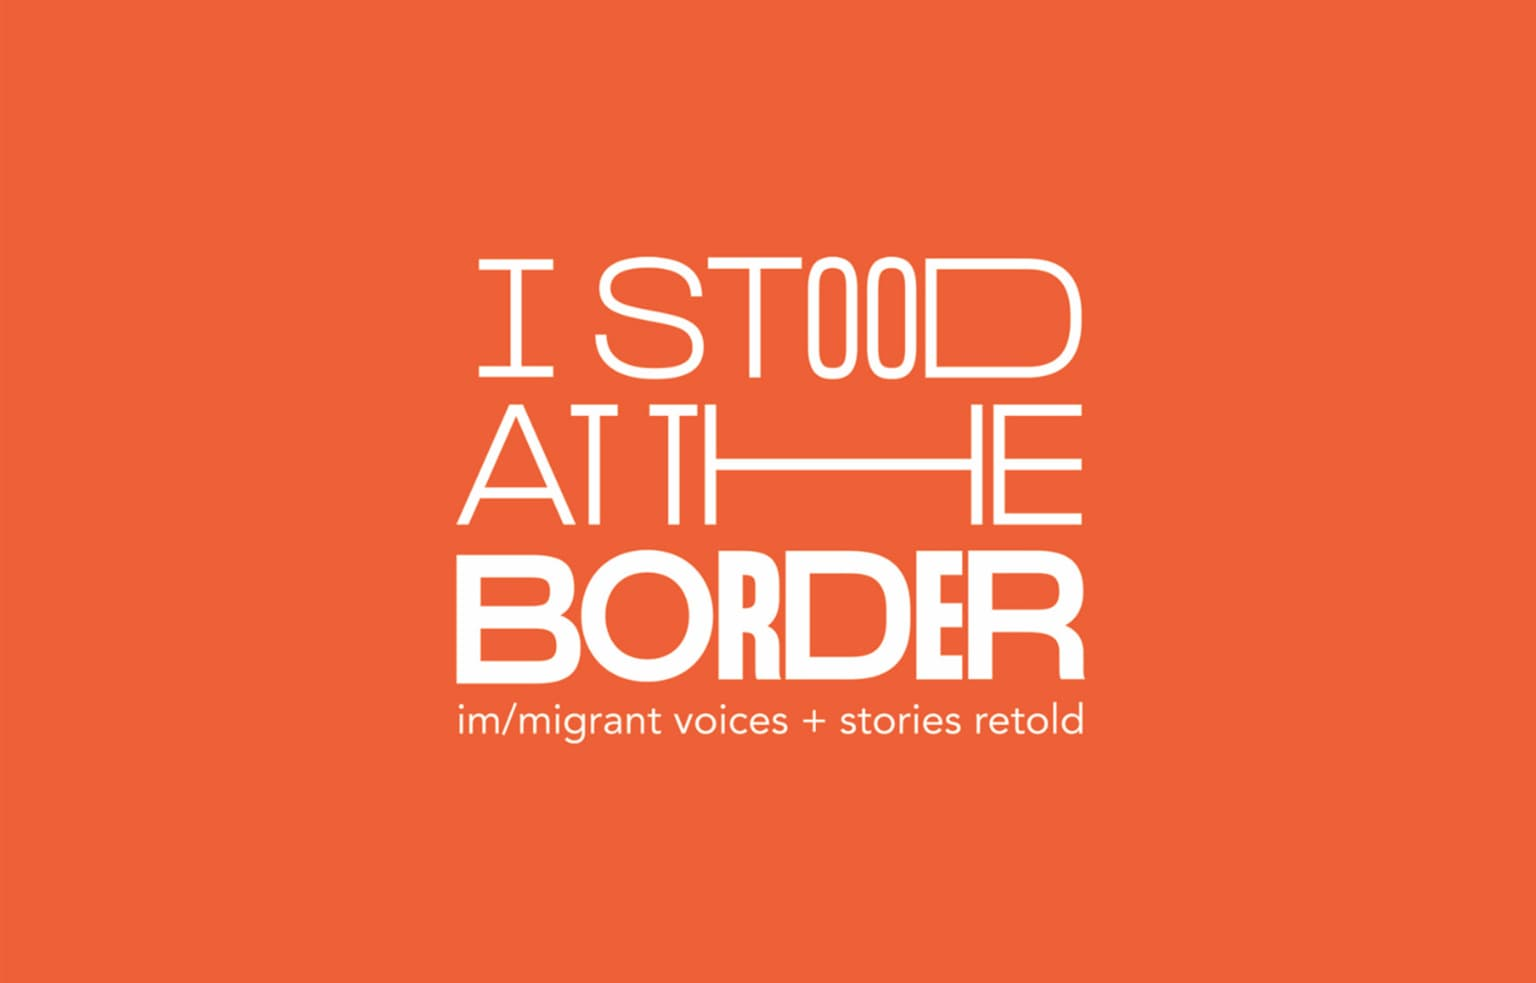 Rutgers BFA Graphic Design Exhibition 2019 — I Stood at the Border: Im/Migrant Voices and Stories Retold